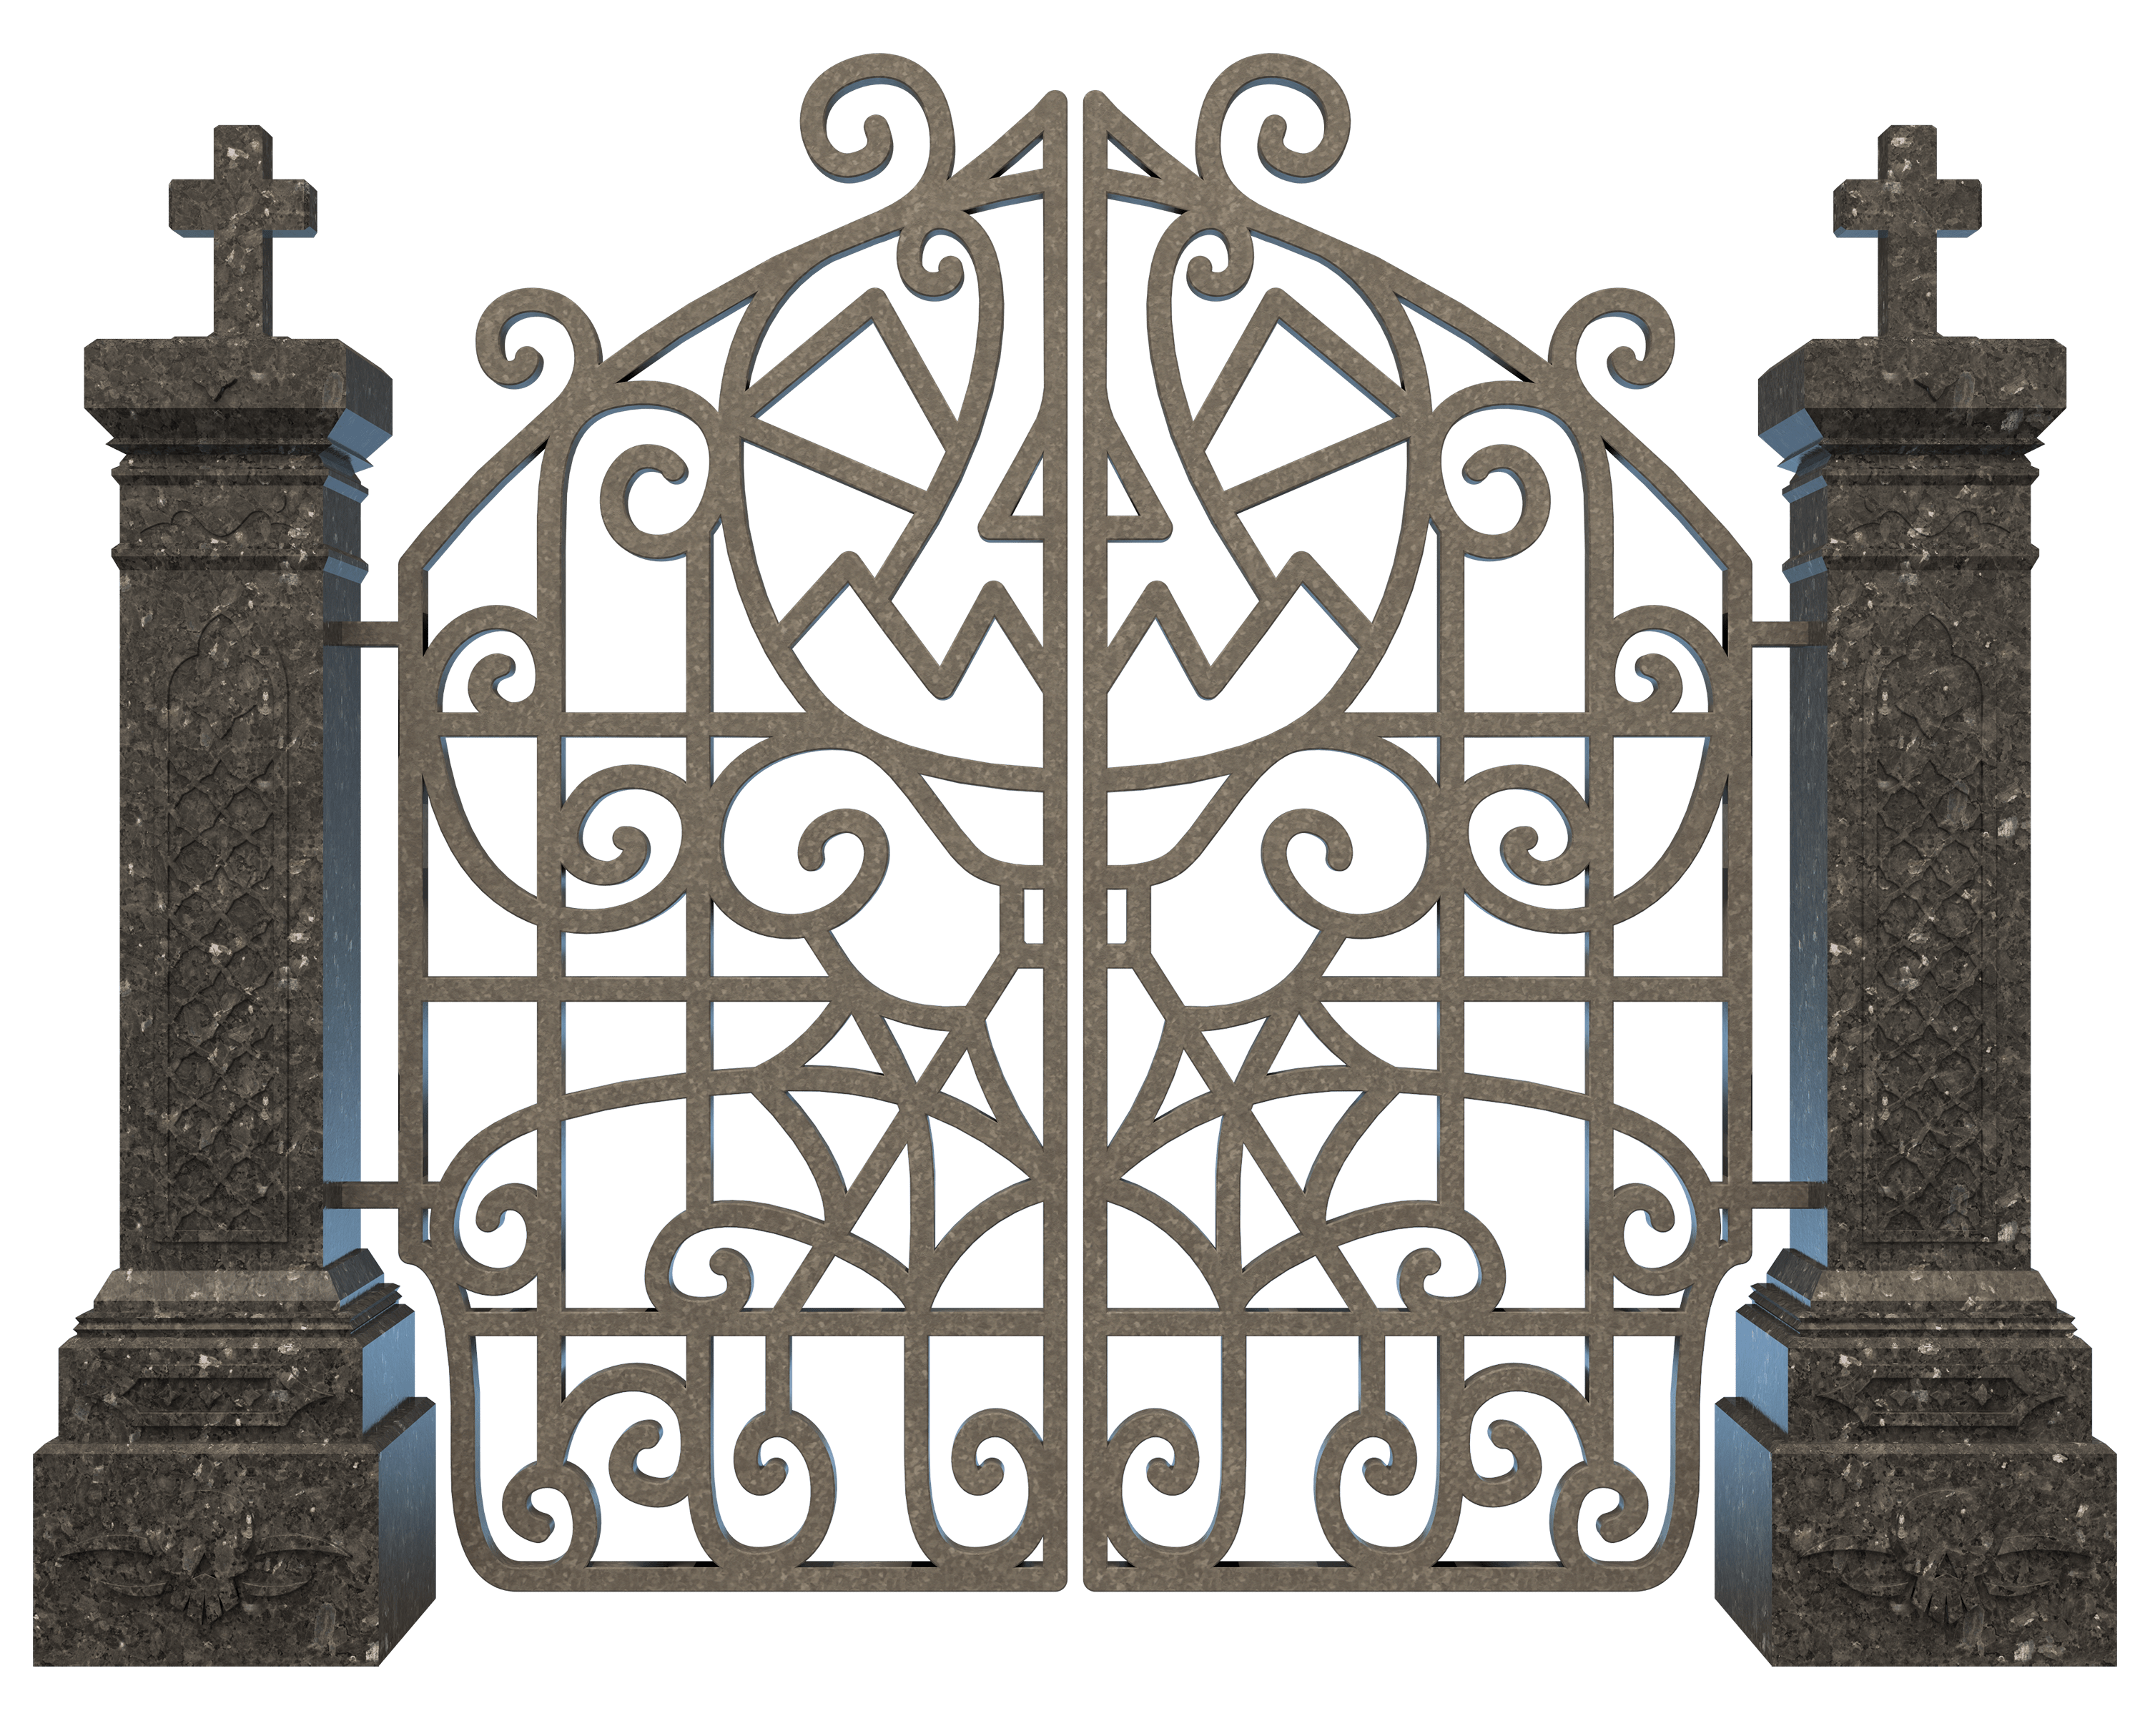 Grave clipart transparent PNG Iron StickPNG Cemetery Graveyard